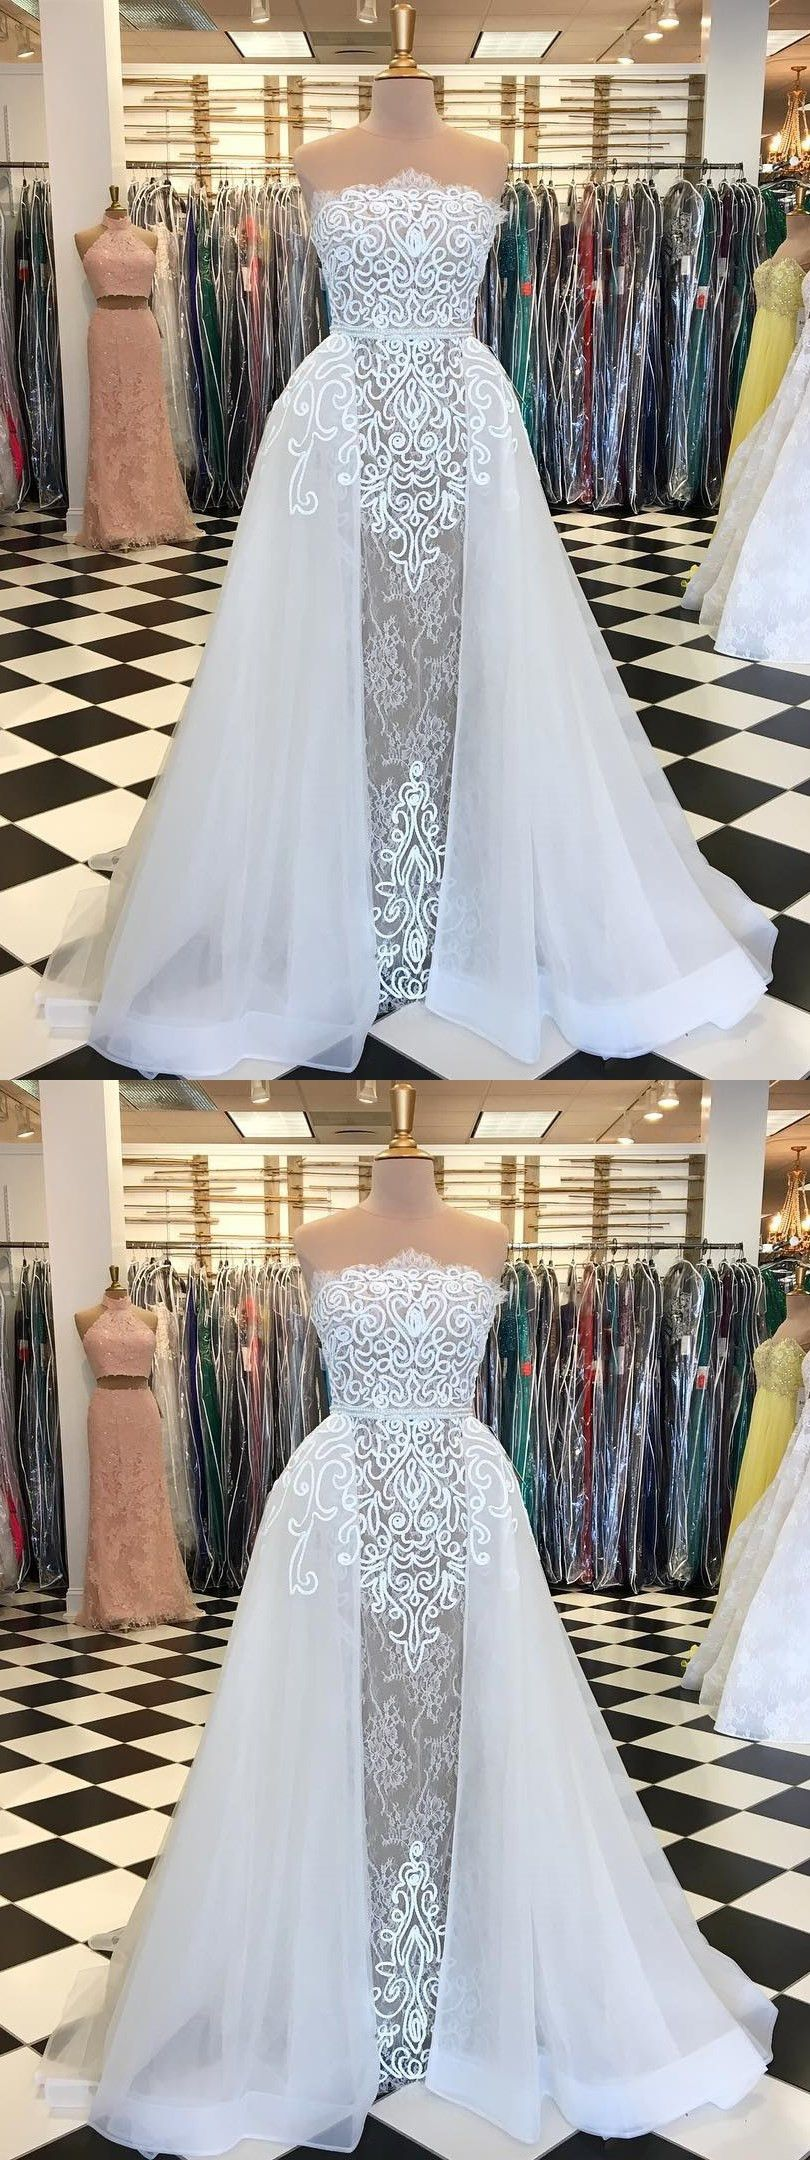 Chic white prom dress strapless lace aline long prom dresses